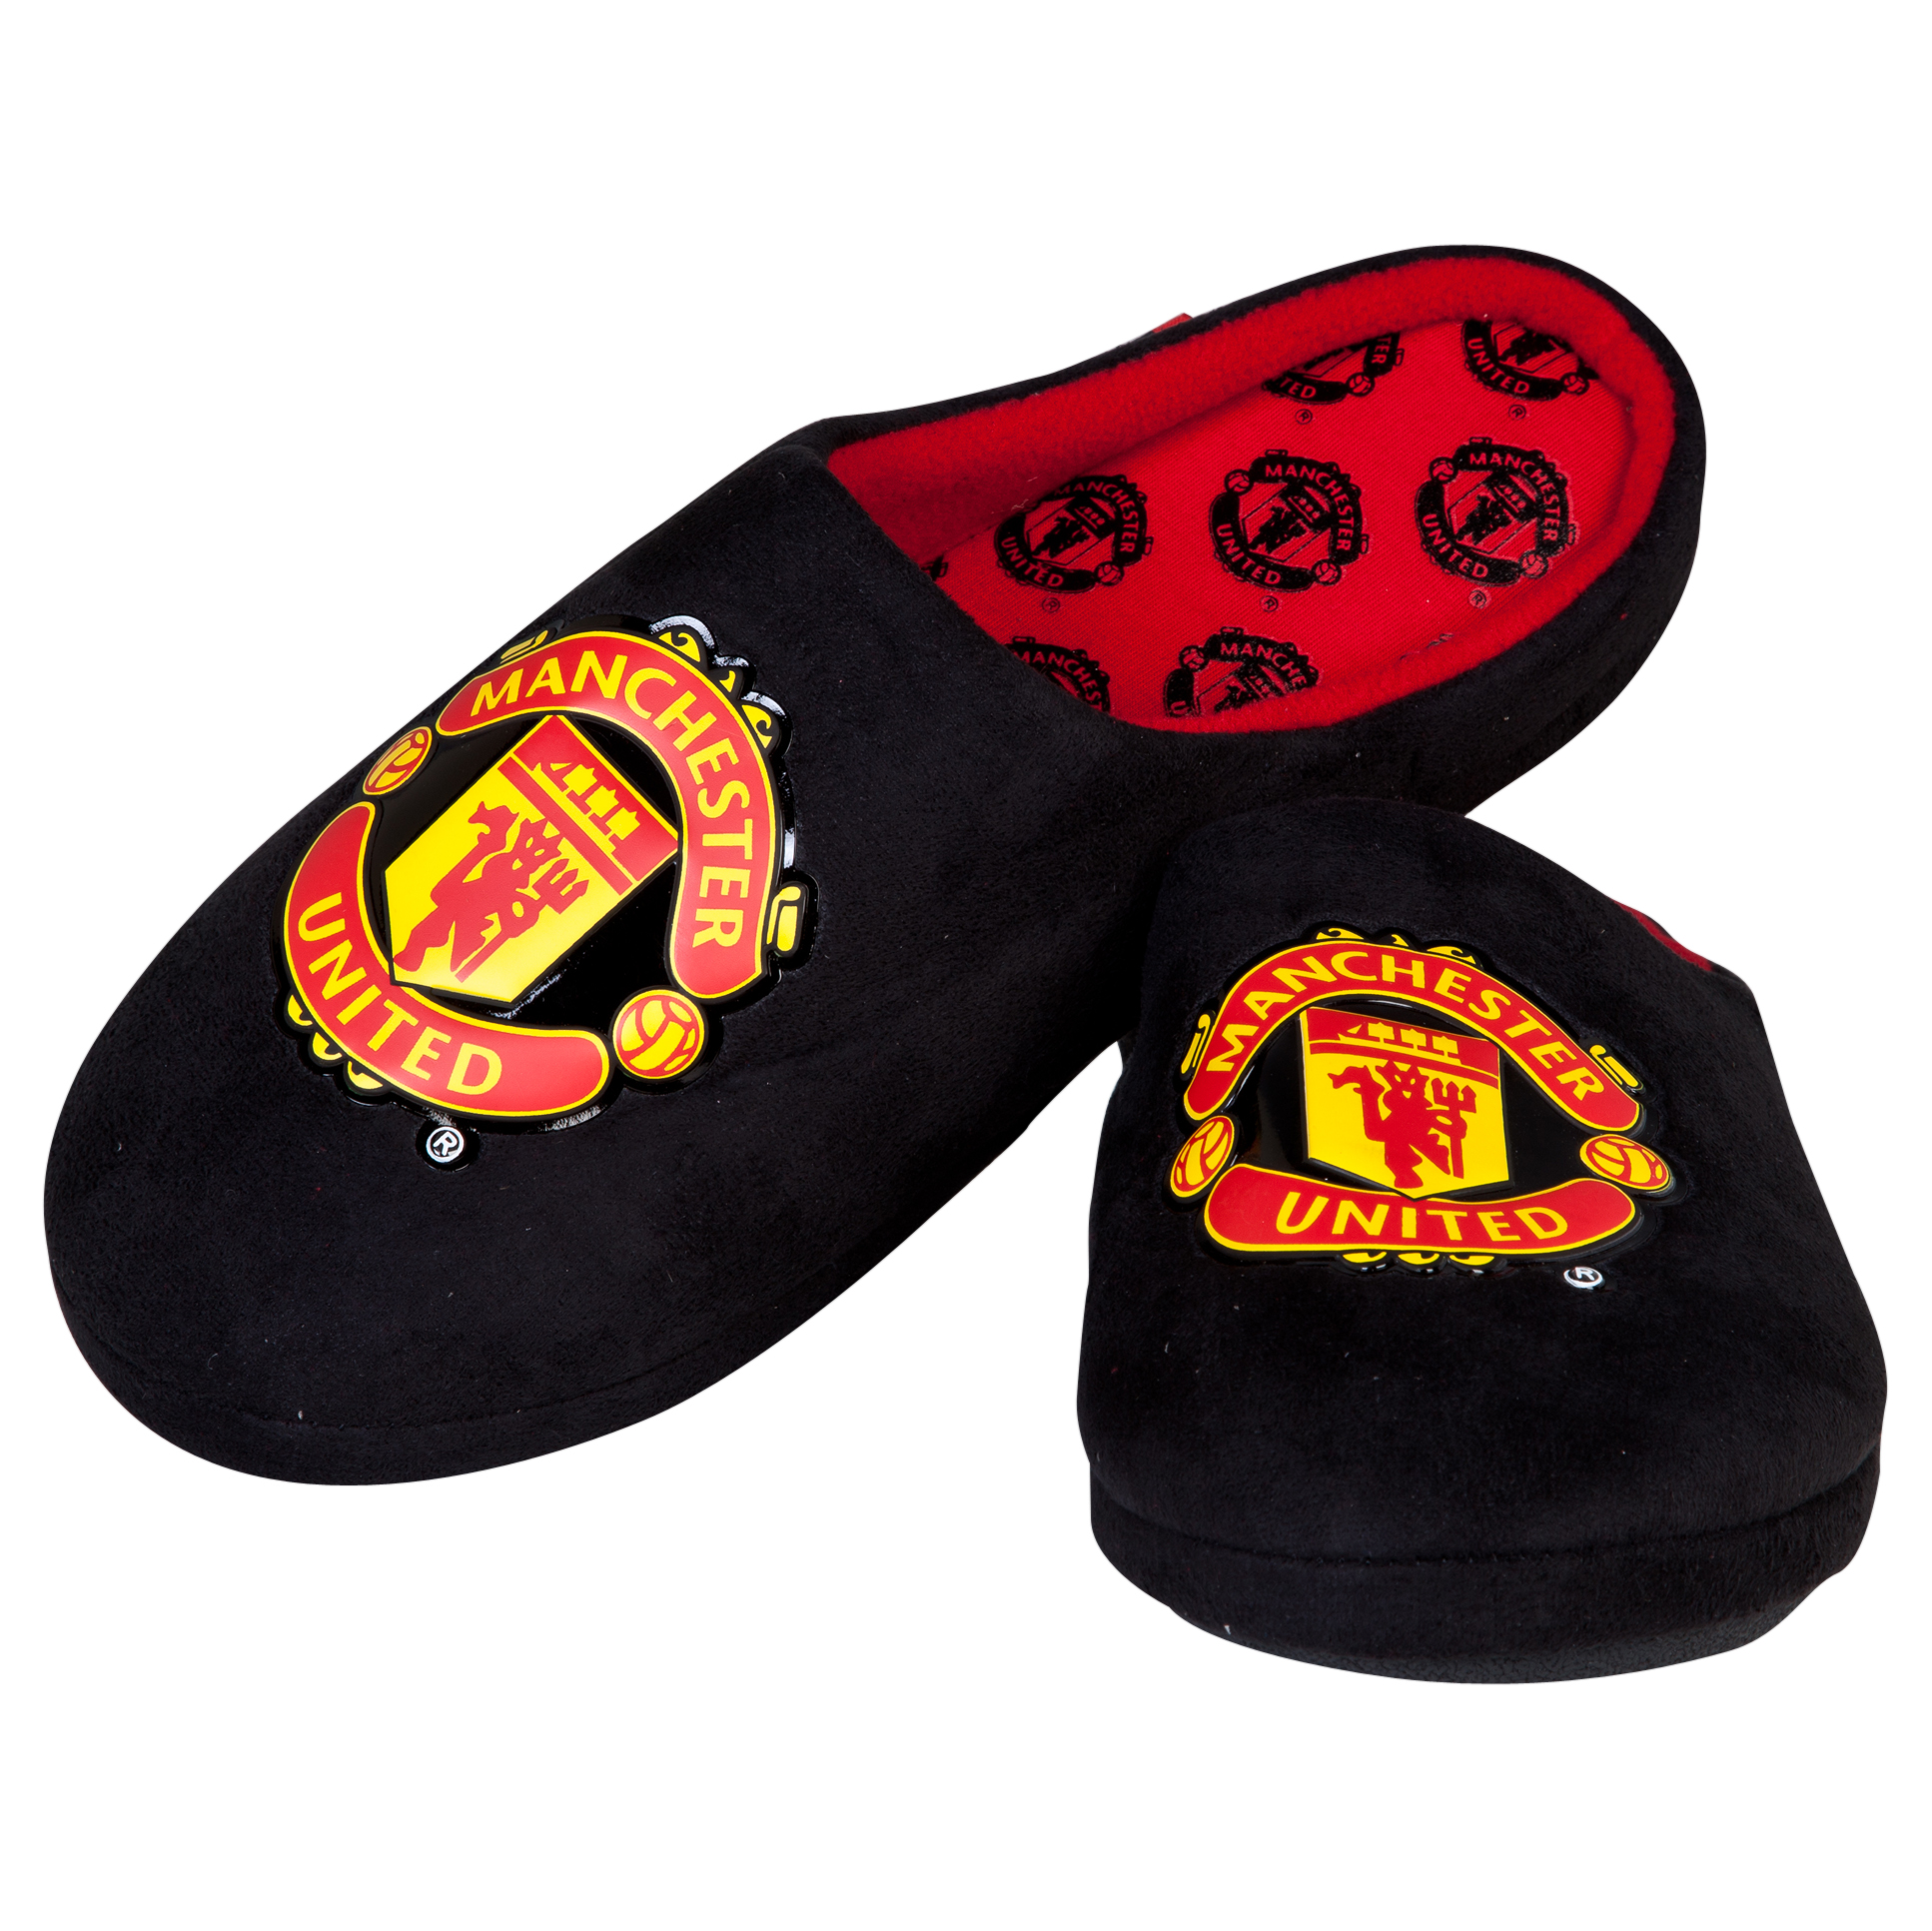 Manchester United Defender Crest Slipper - Black/Red - Mens